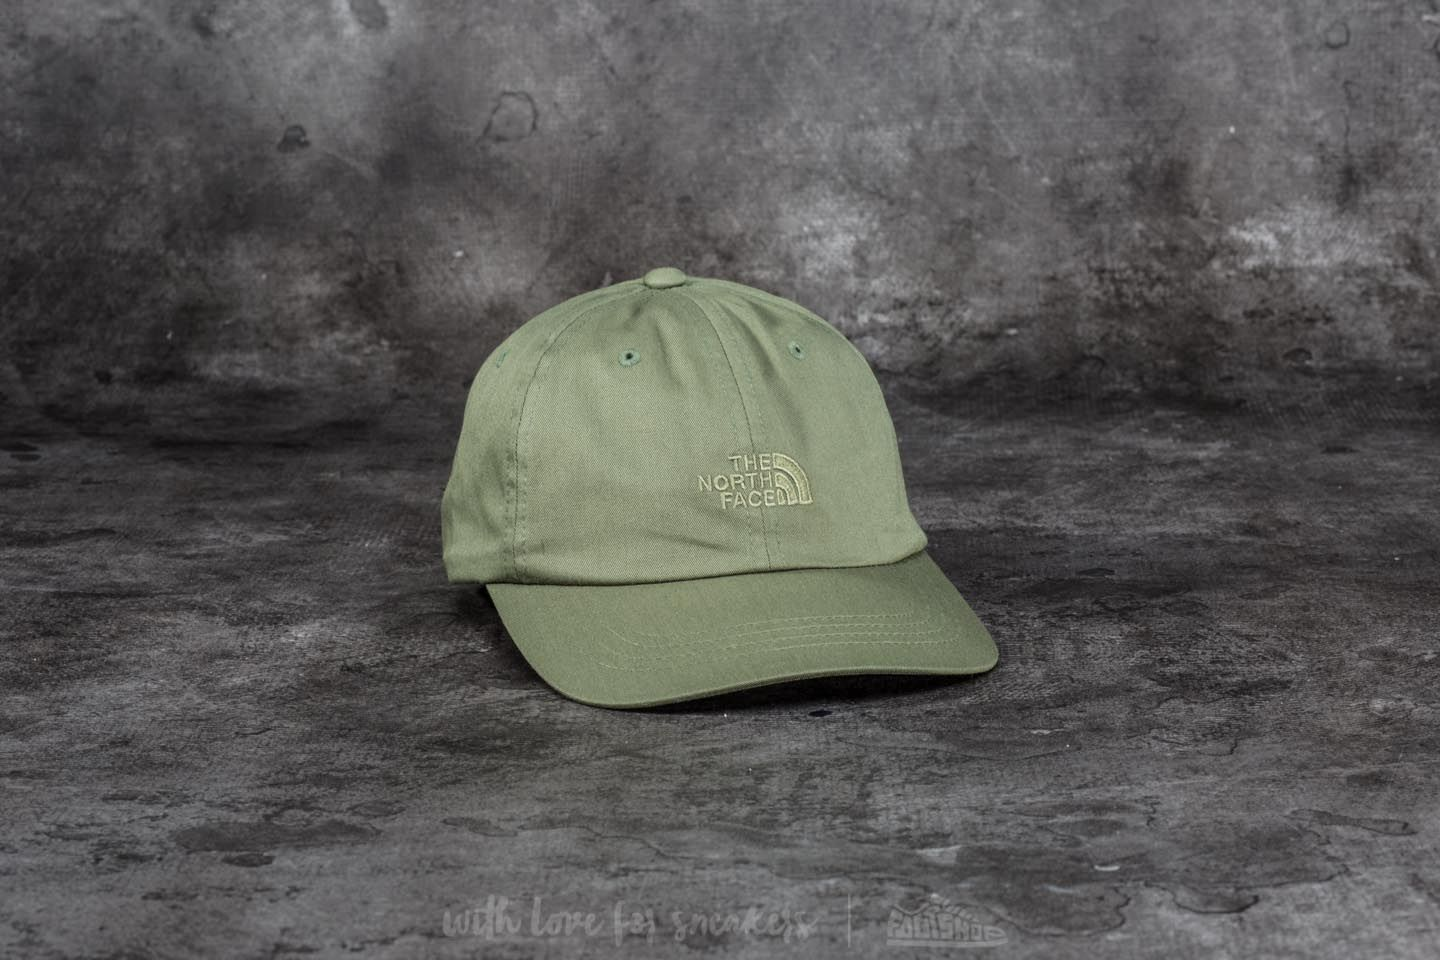 The North Face The Norm Hat Burnt Olive Green  306a4469847